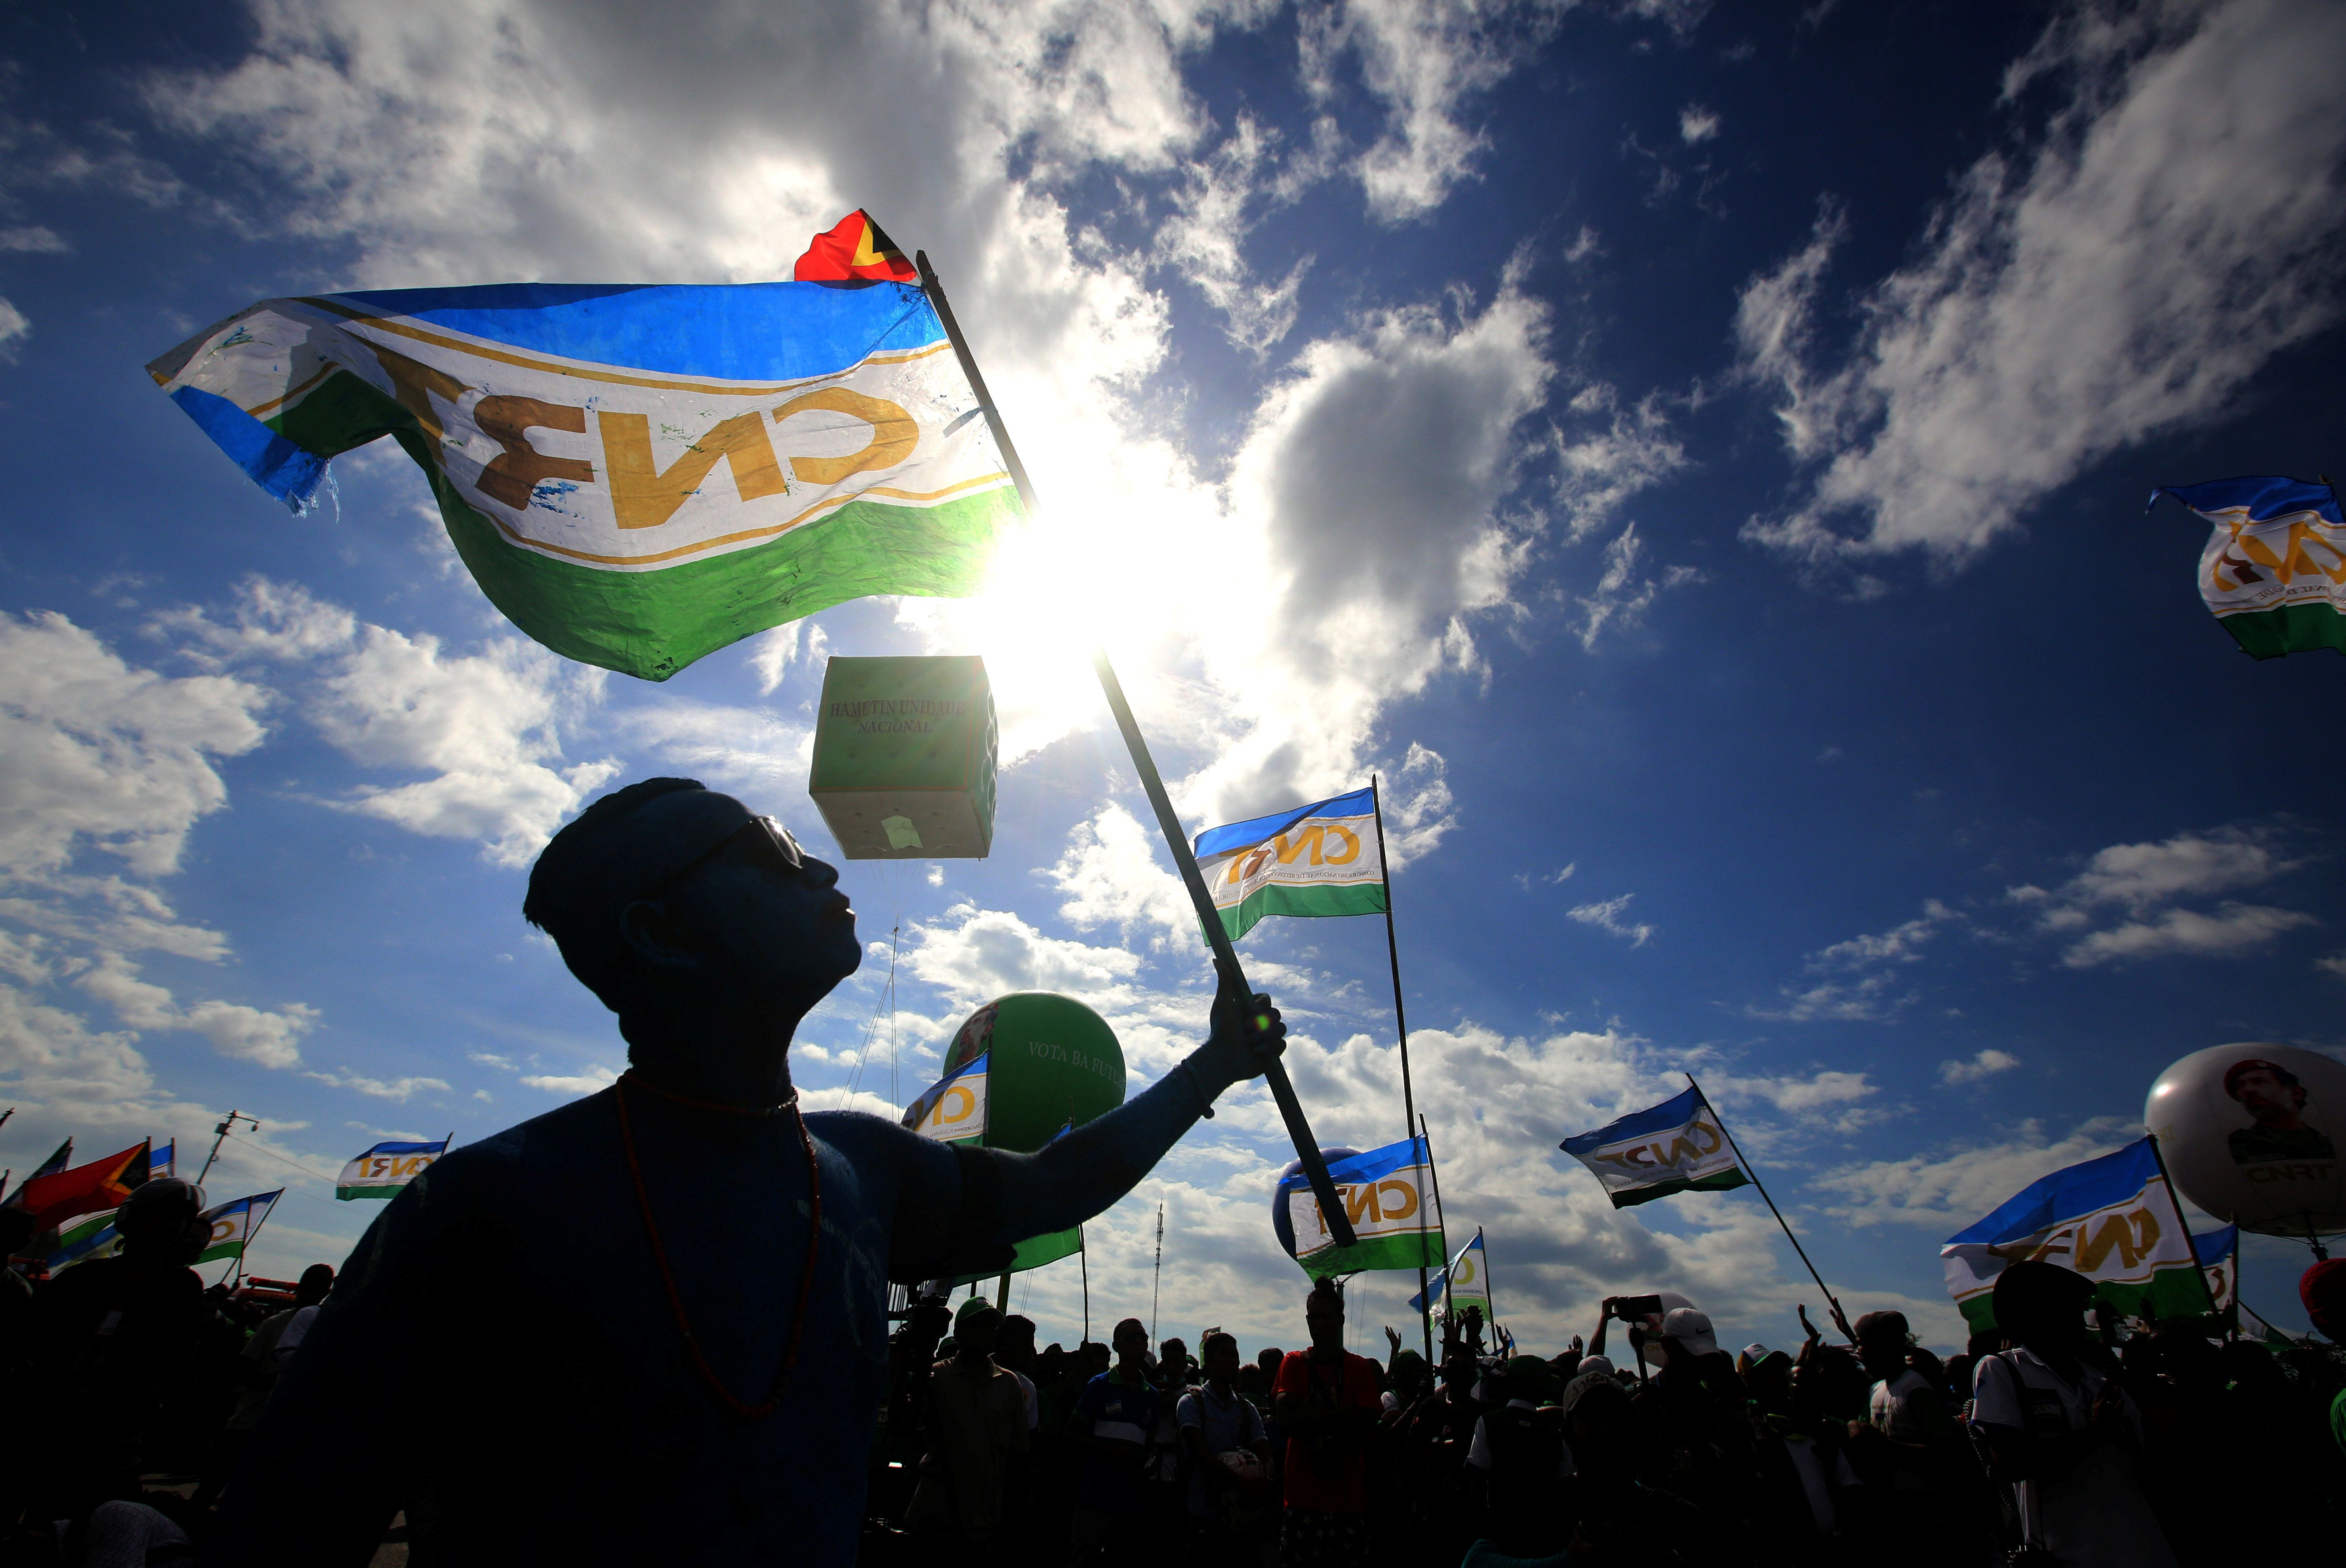 Supporters of the the National Congress for Timorese Reconstruction (CNRT) political party attend a rally ahead of this weekend's parliamentary elections in Dili, East Timor July 18, 2017. Picture taken July 18, 2017. REUTERS/Lirio Da Fonseca